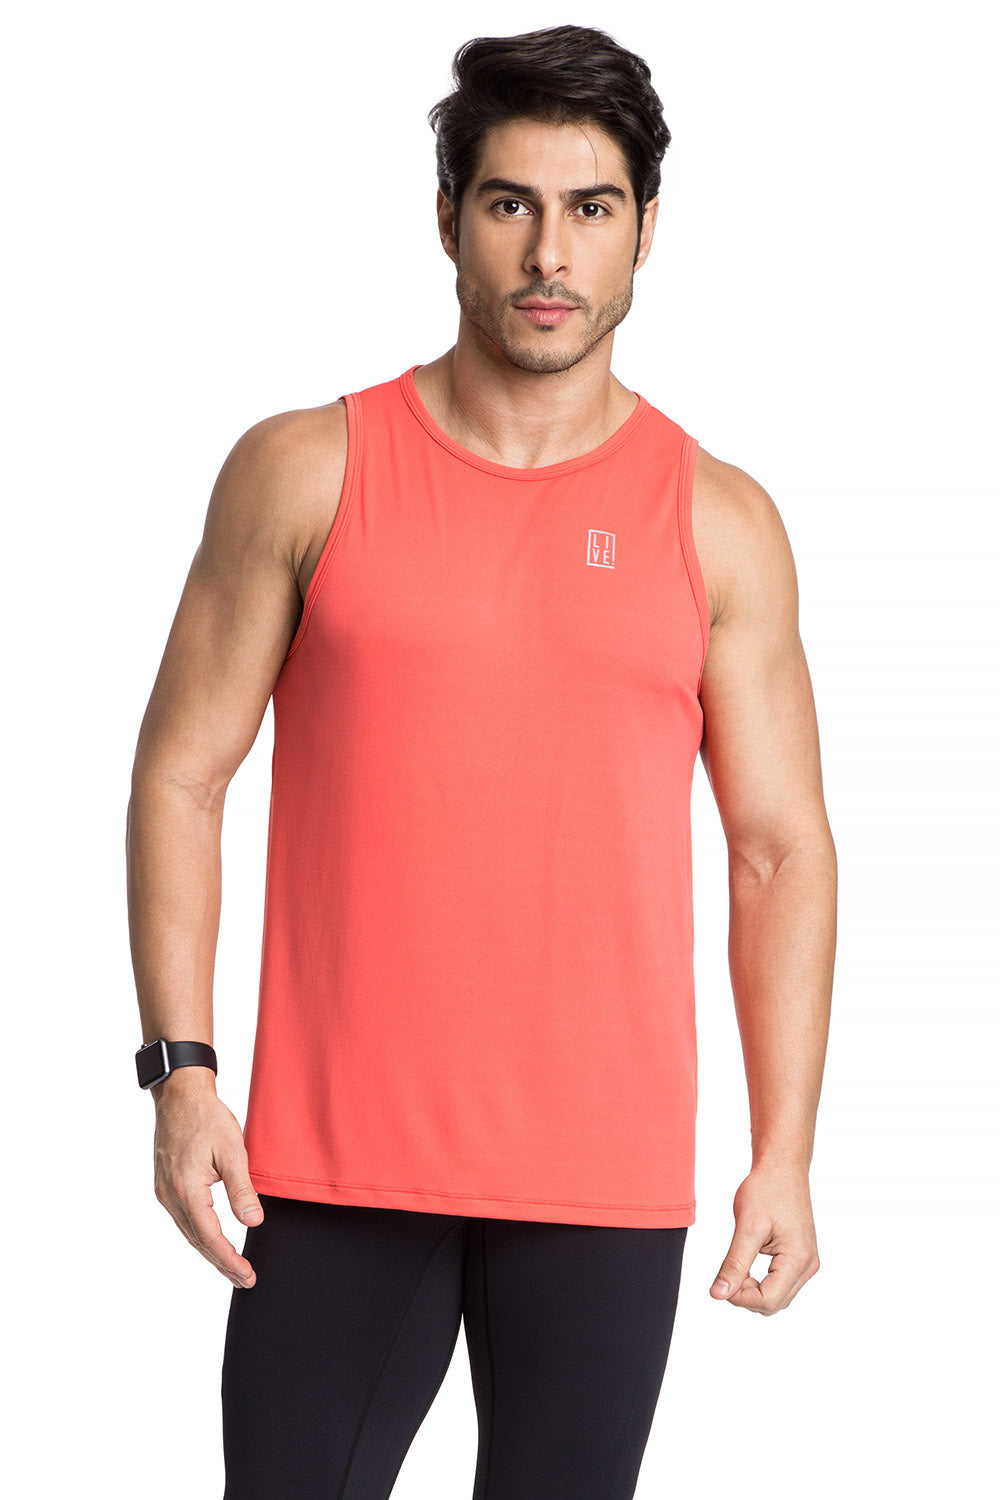 Comfy Menswear Muscle Shirt 1